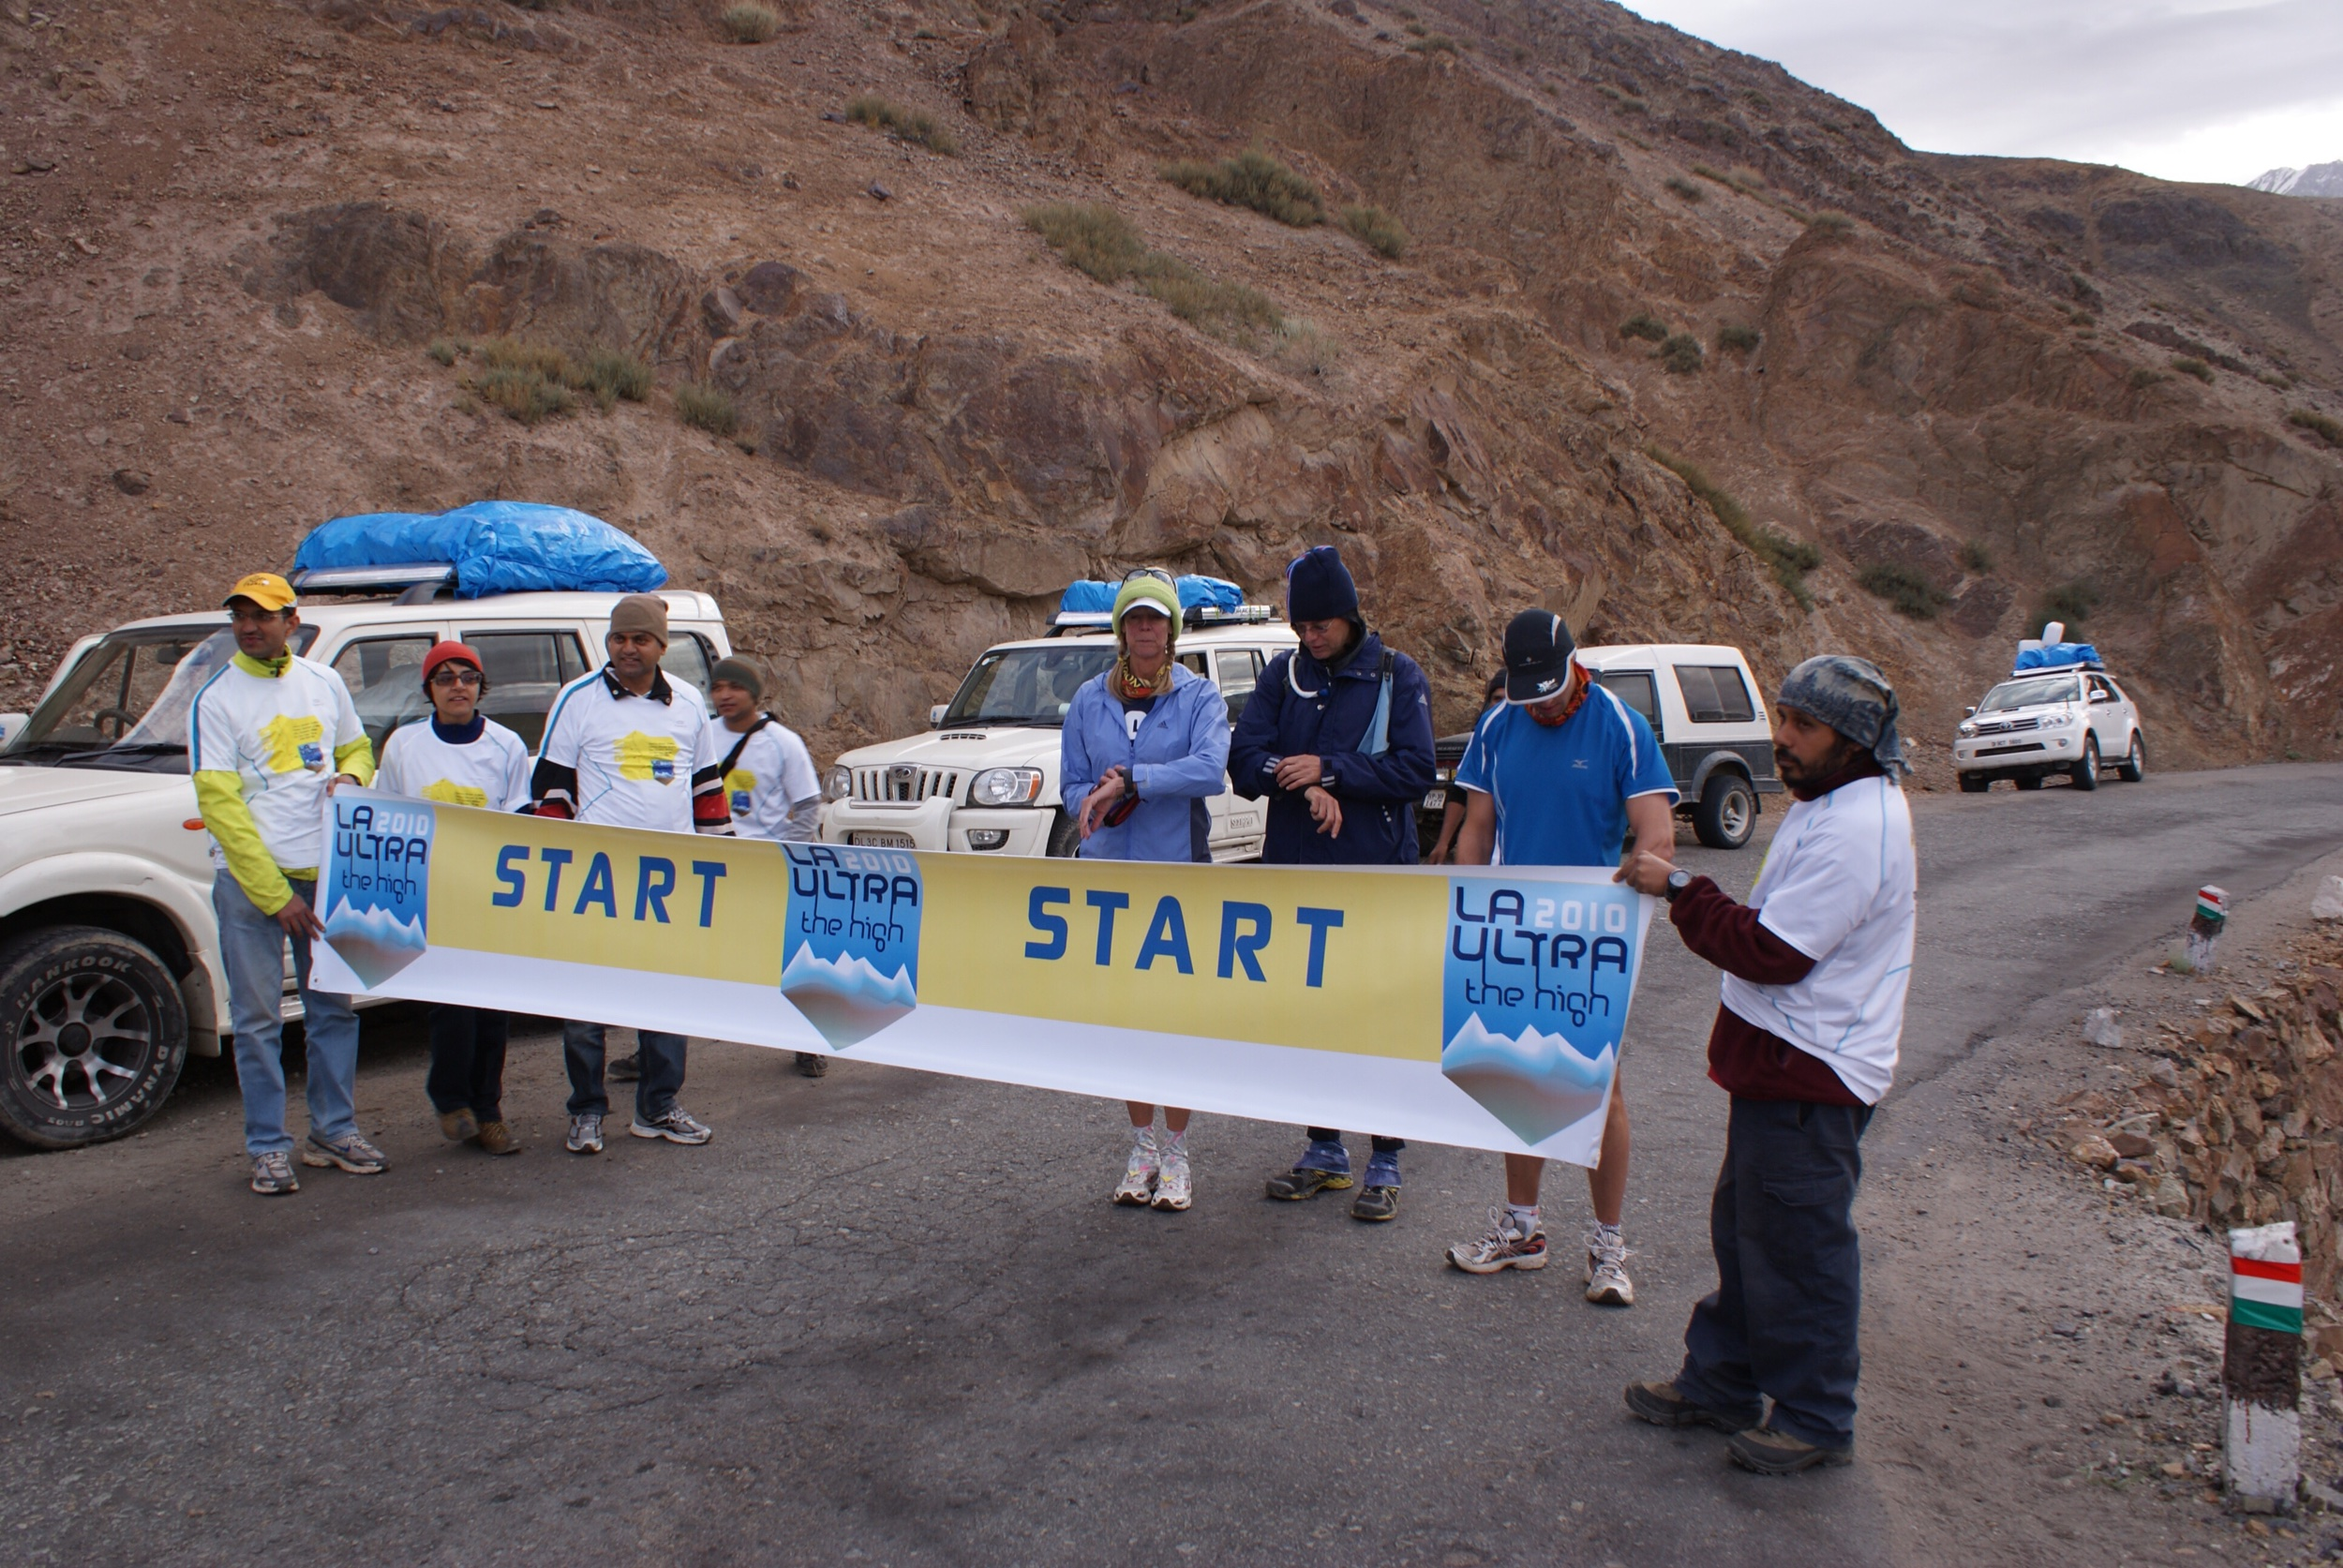 Way back in 2010, only three stood at startline